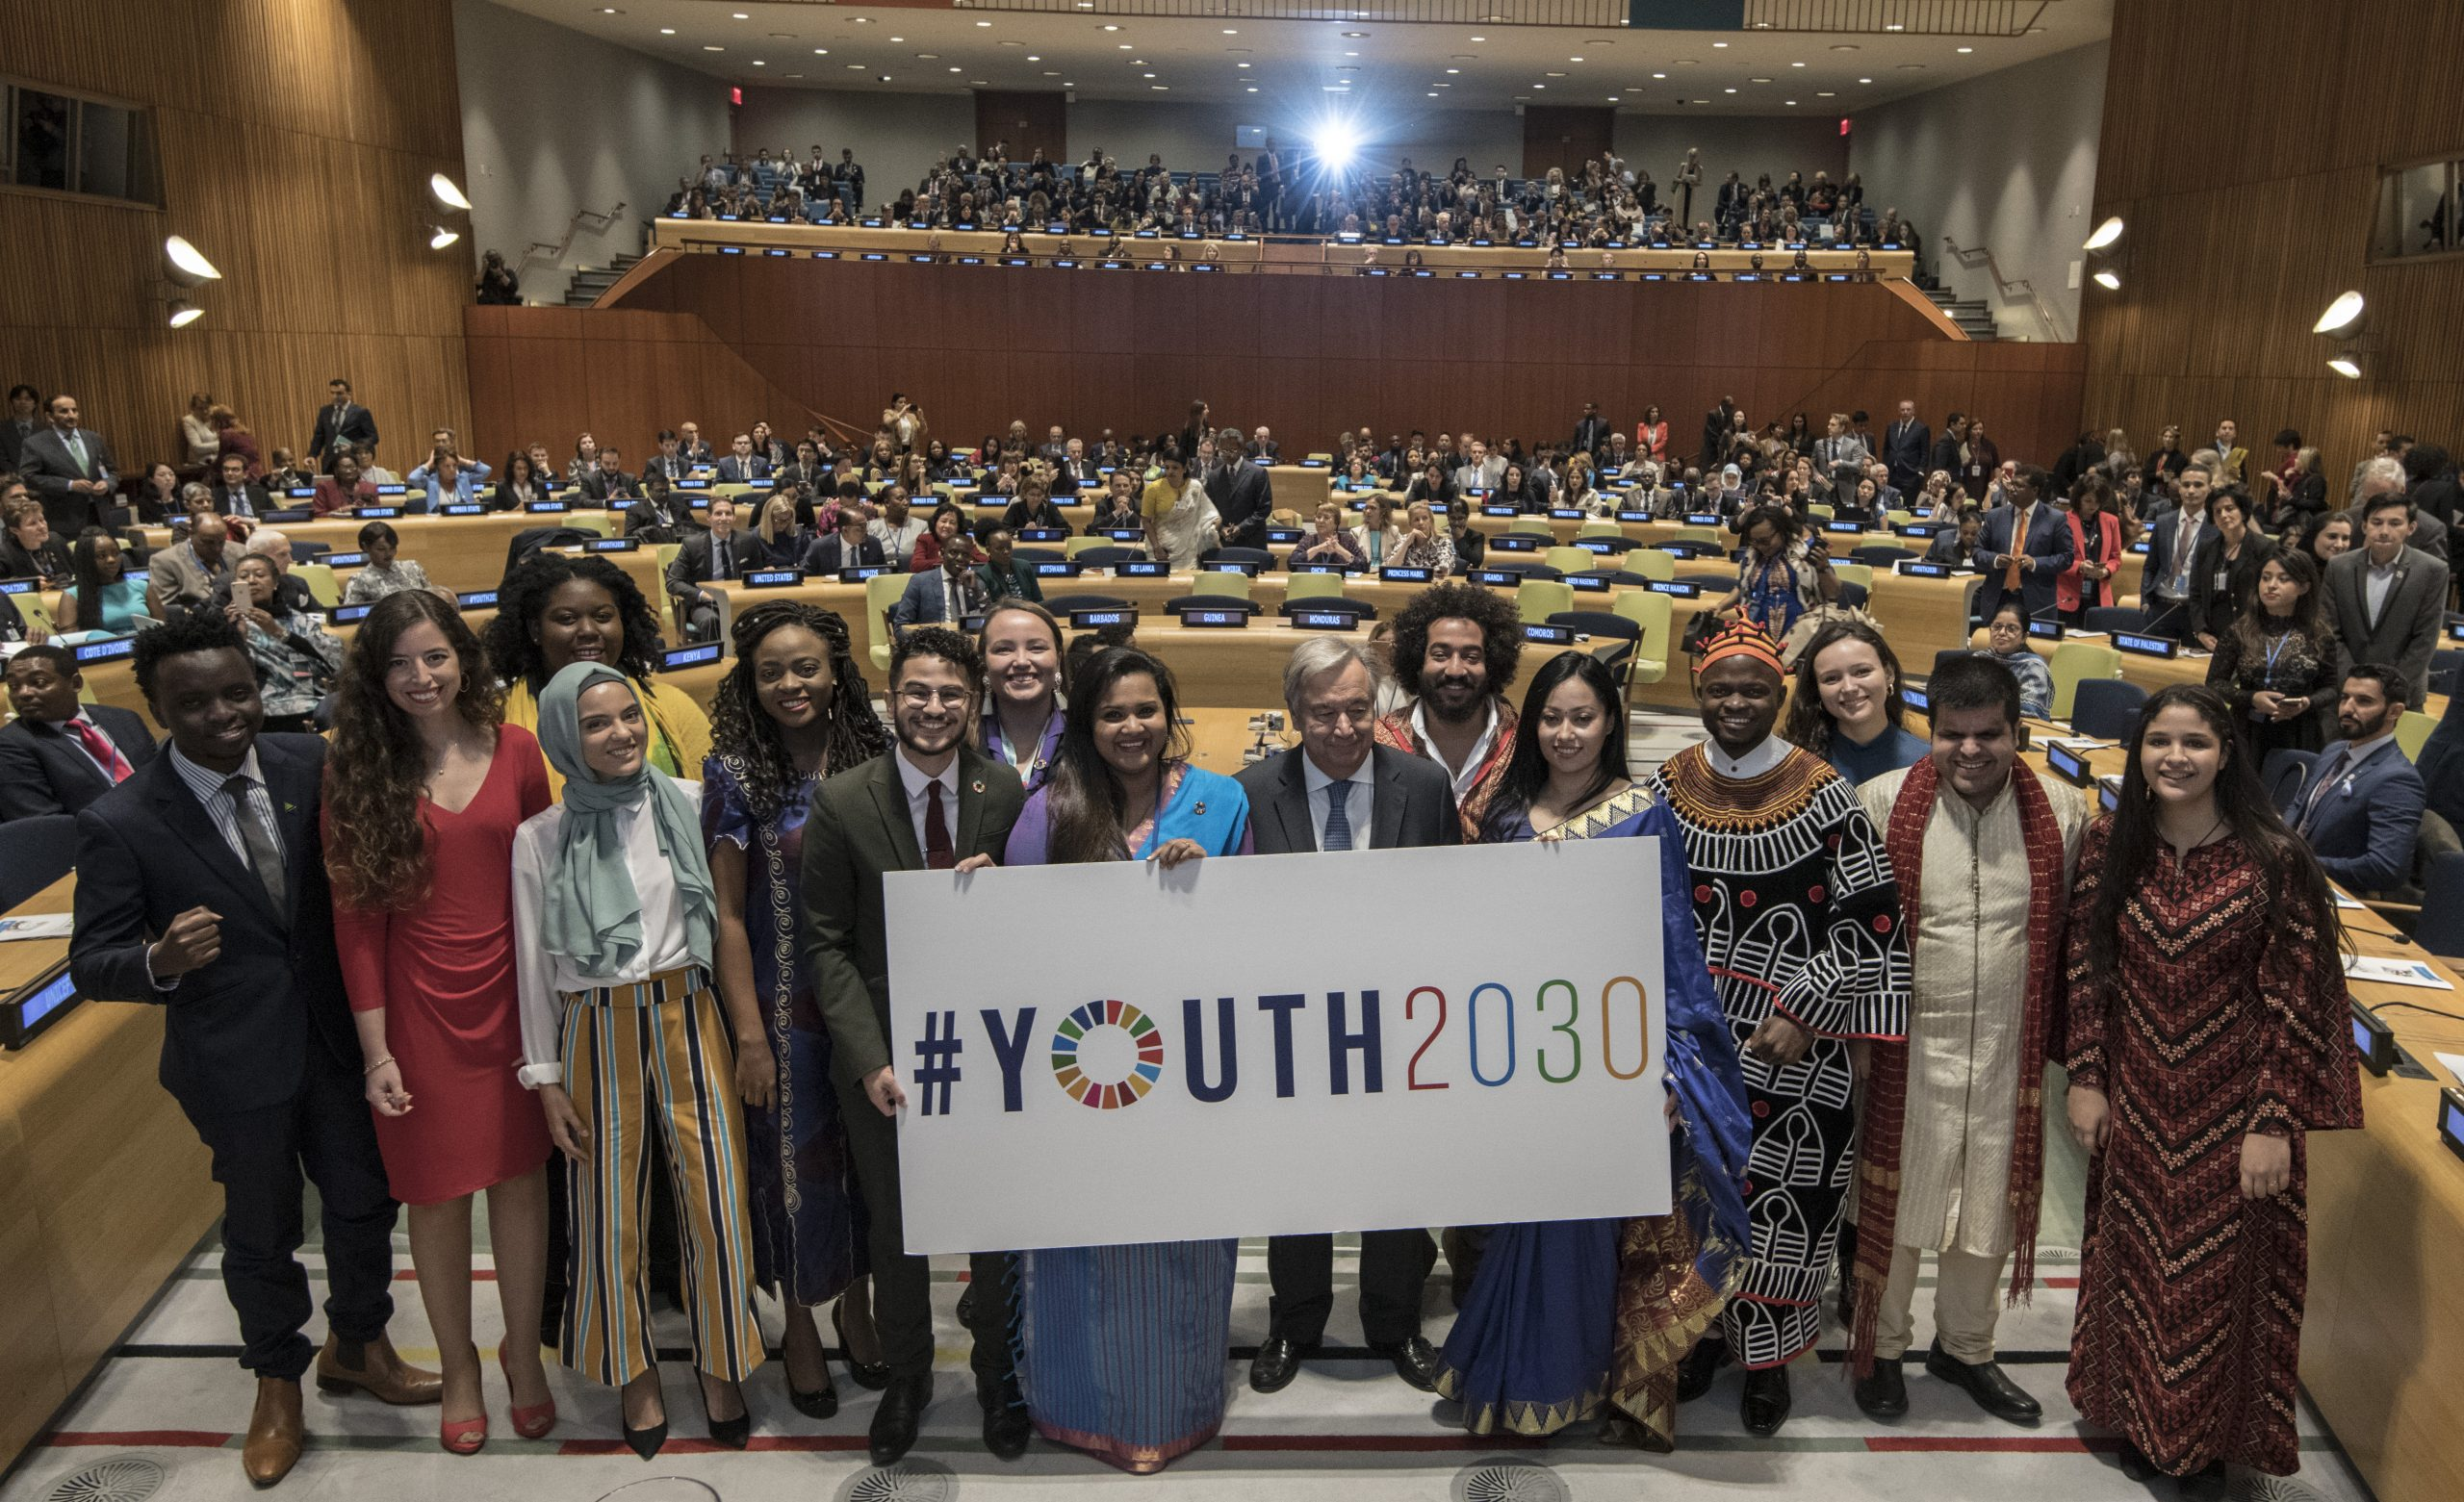 Young leaders from around the world join the UN Secretary-General and the Secretary-General's Envoy on Youth in the UN General Assembly Hall. They are holding a sign that says #Youth2030.